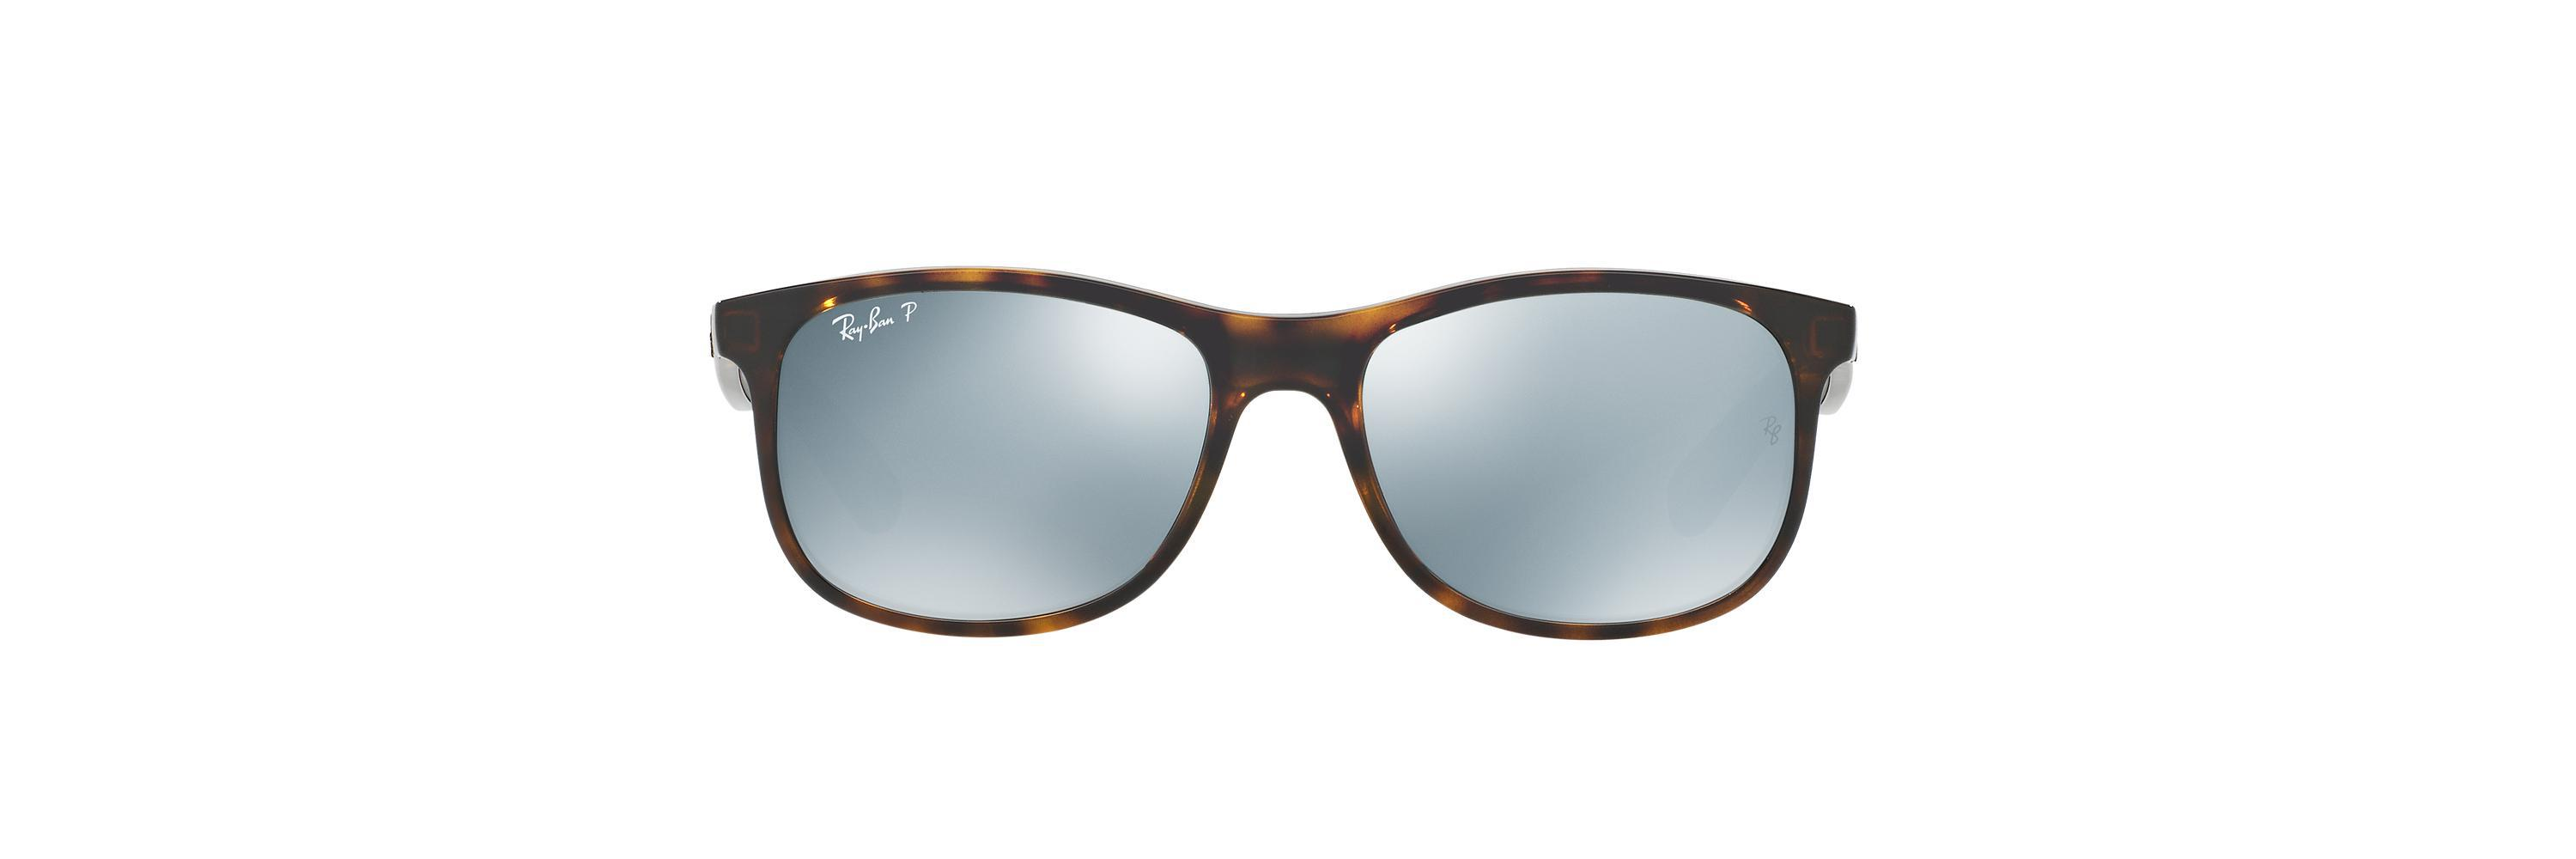 96f6faa4cc Lyst - Ray-Ban Rb4202 55 Andy Mirror Collection